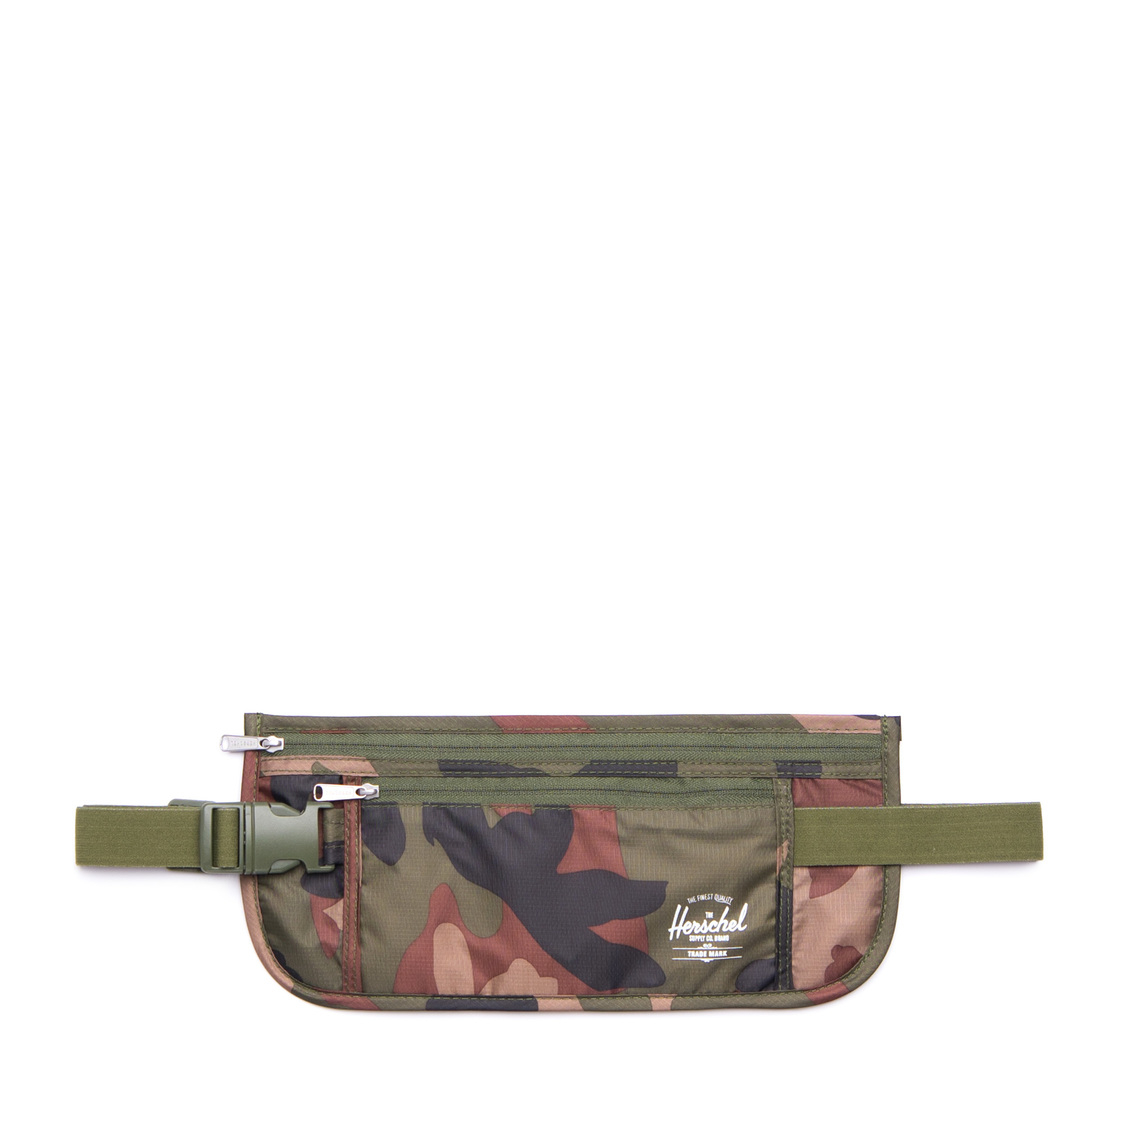 Money Belt Woodland Camo 10532-02507-OS